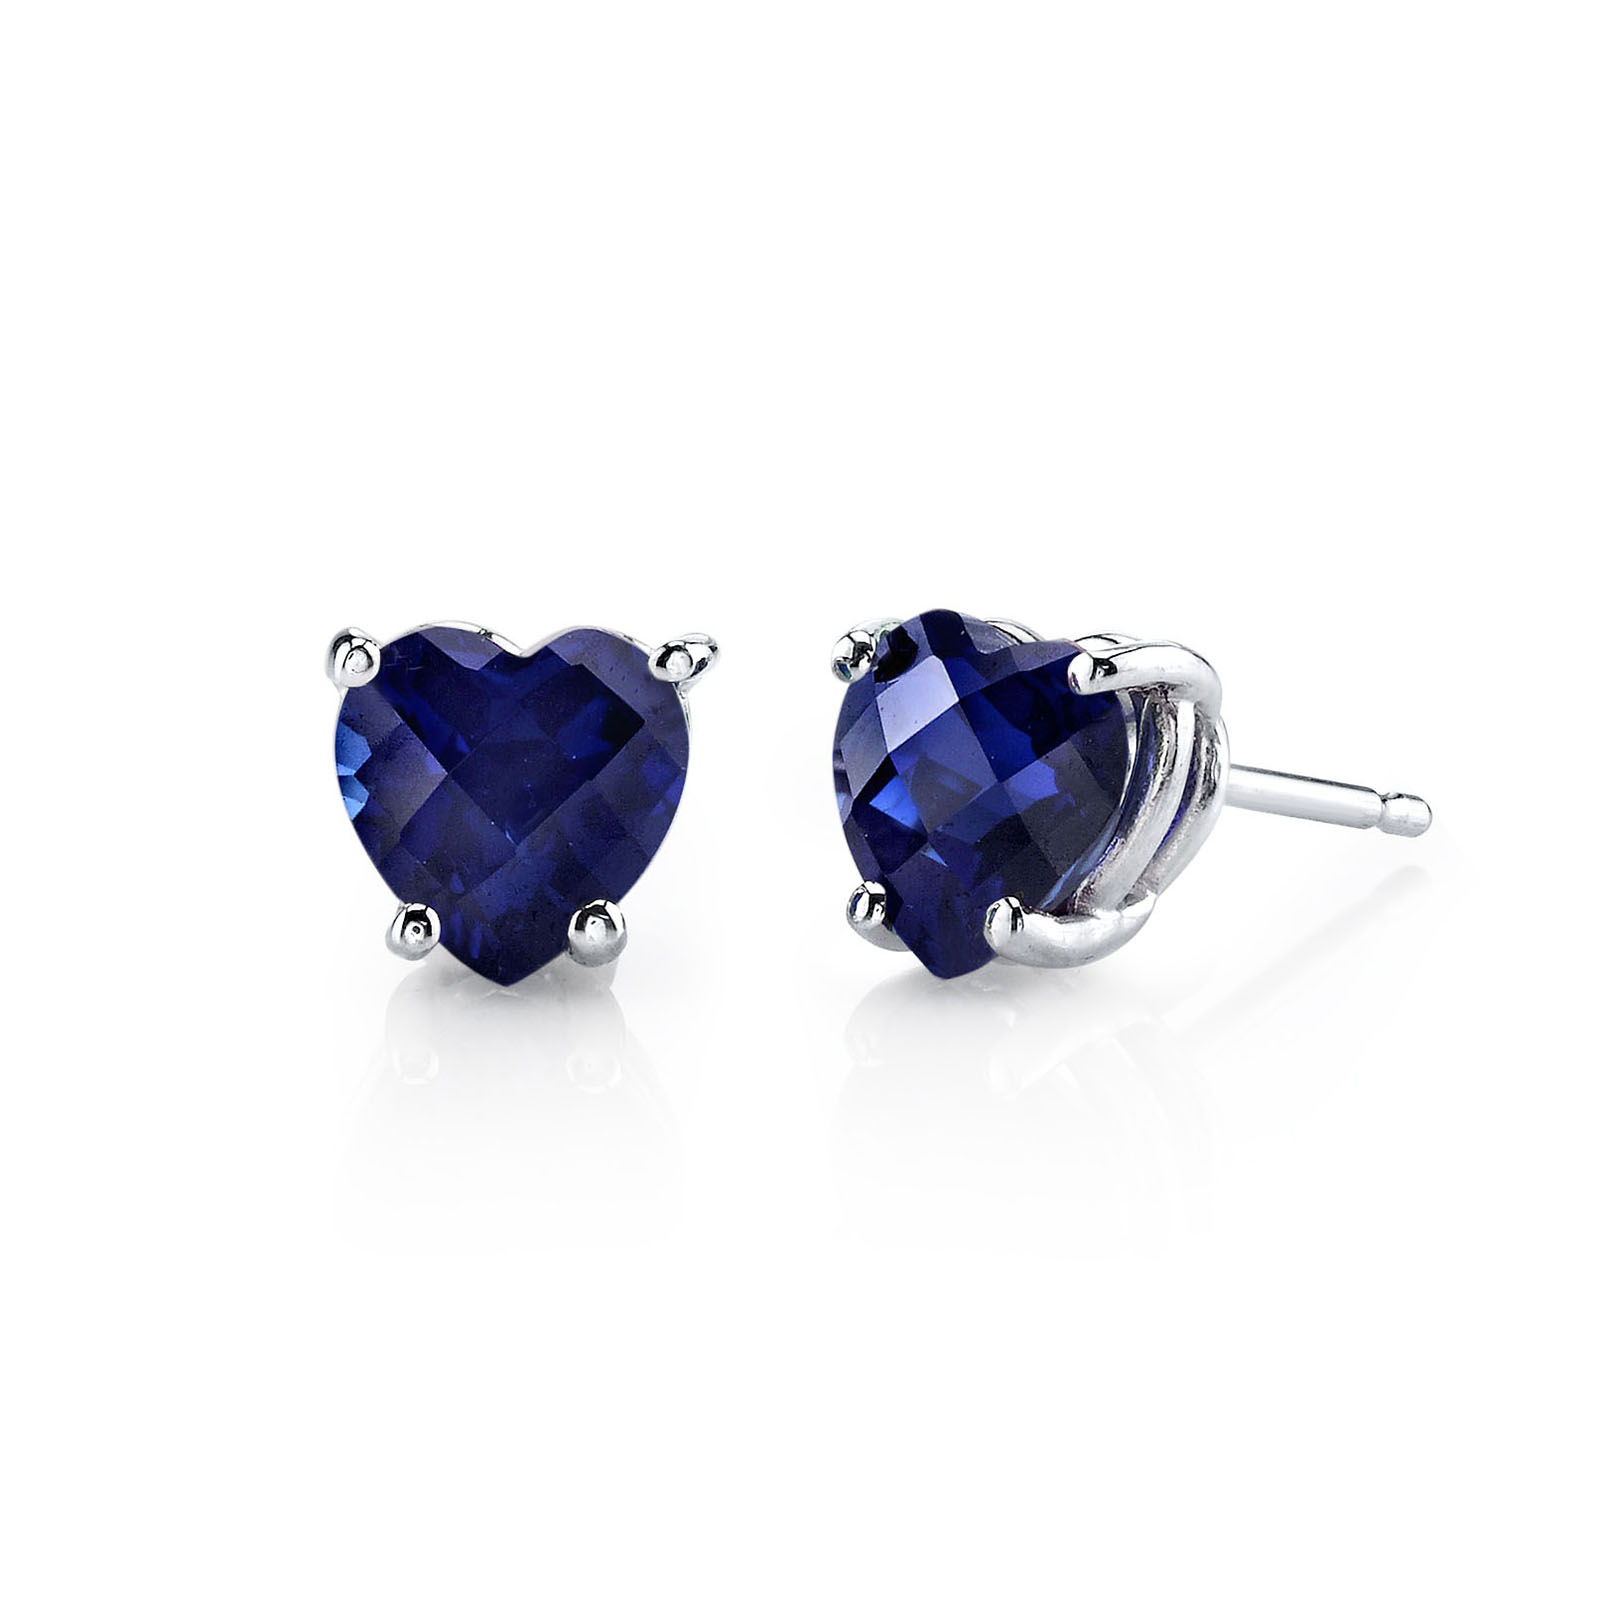 Heart Shaped Sapphire Stud Earrings in 9ct White Gold